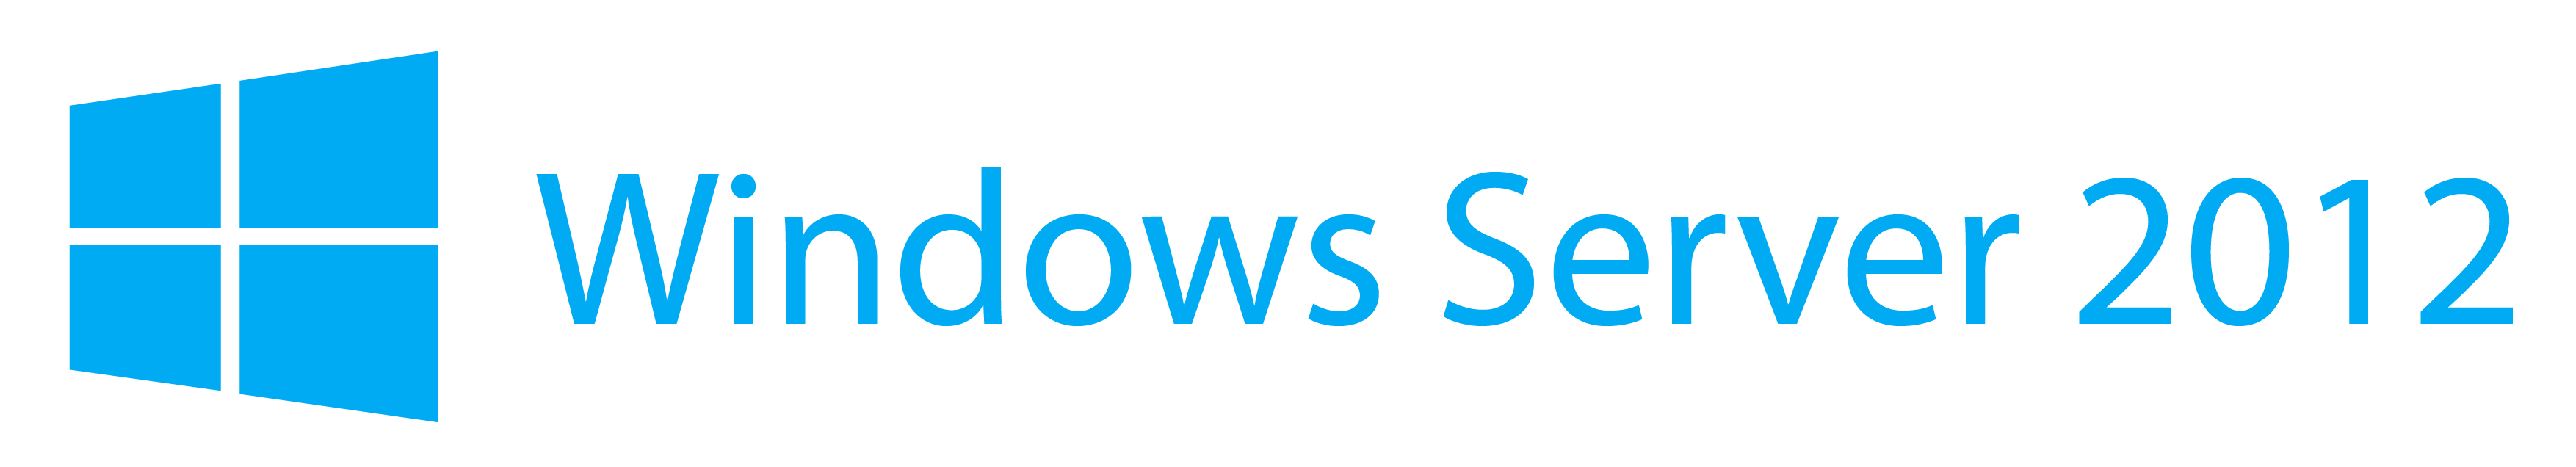 Windows Servers-Commercial Telecommunications in Maryland